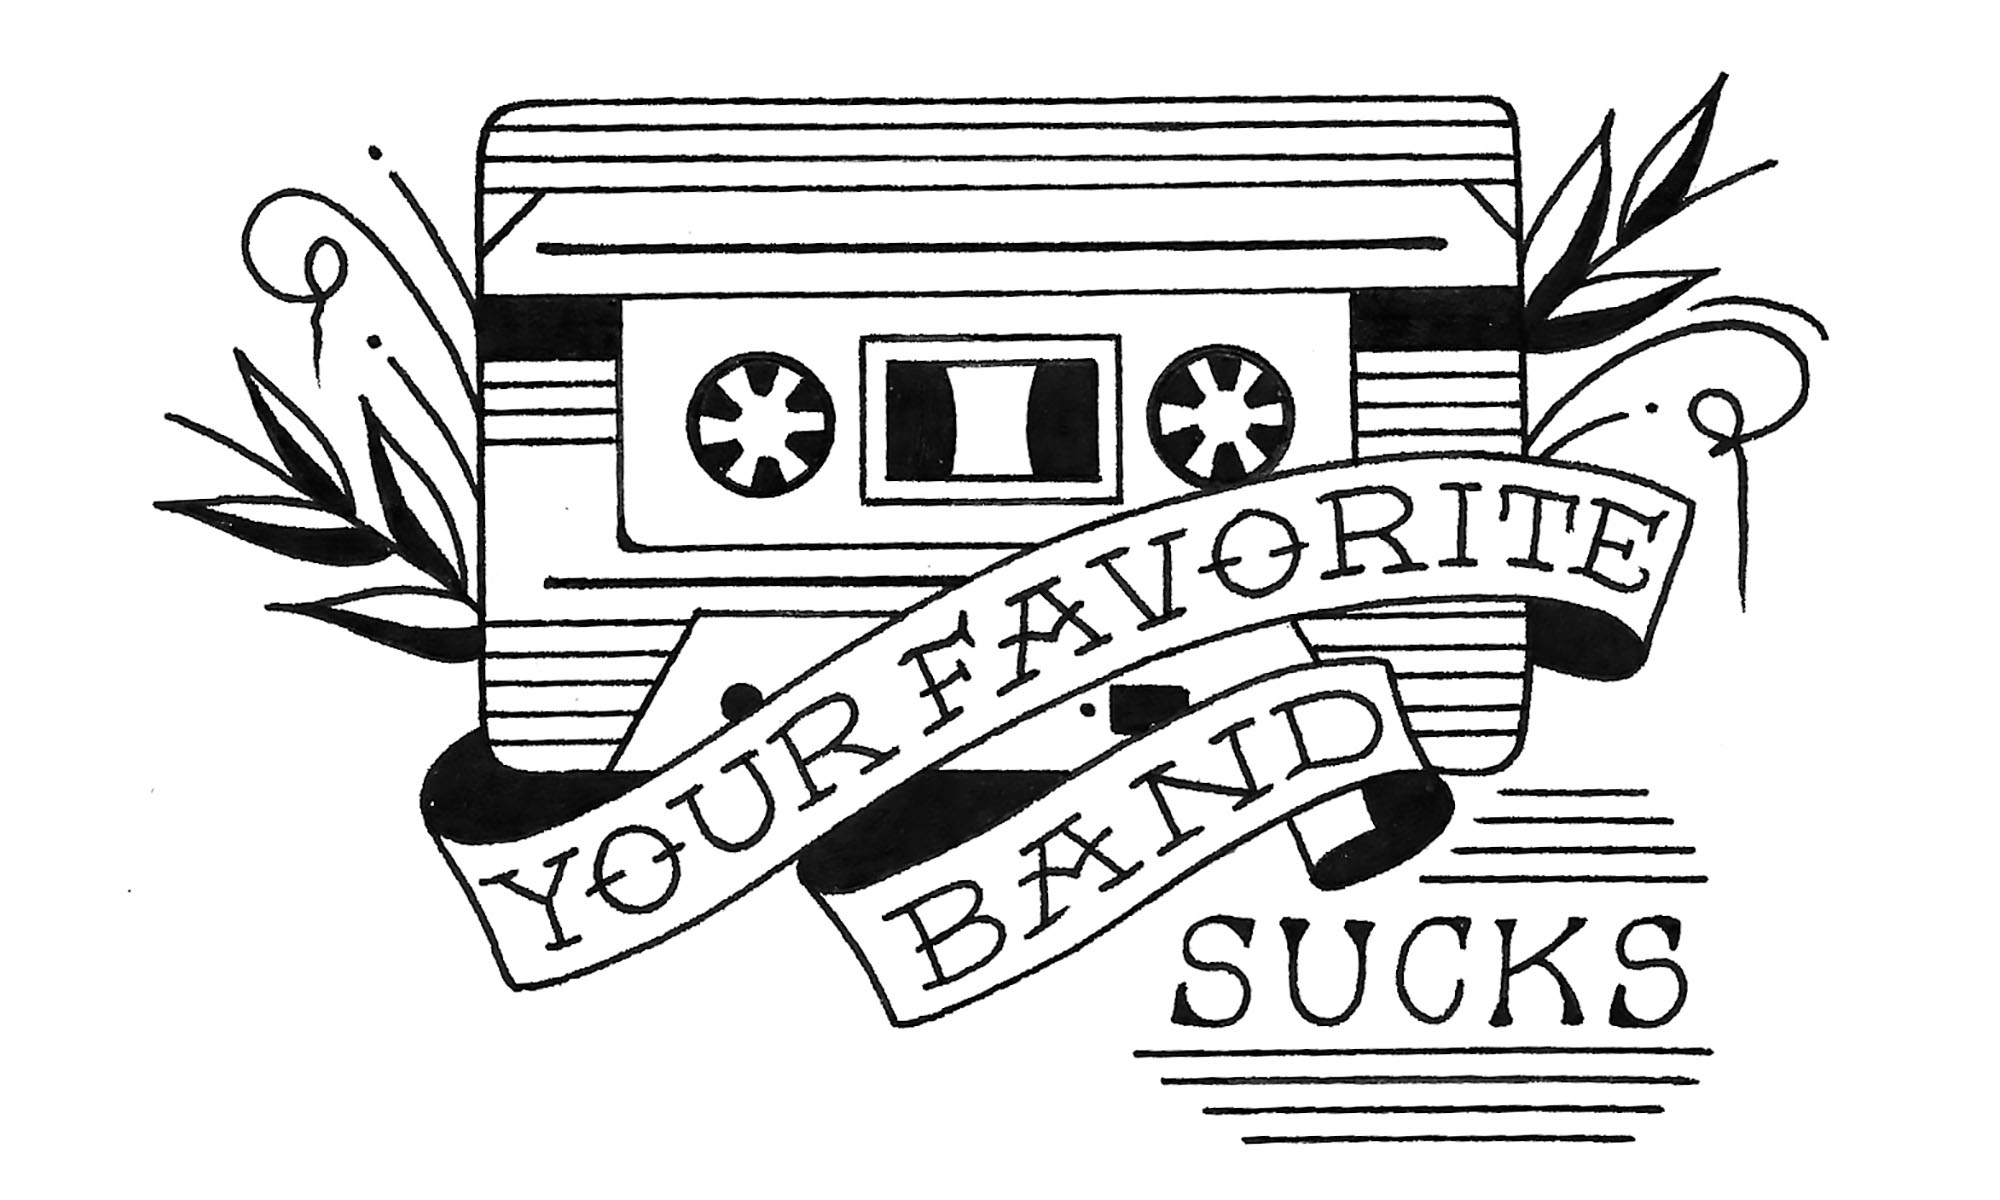 Your Favorite Band Sucks